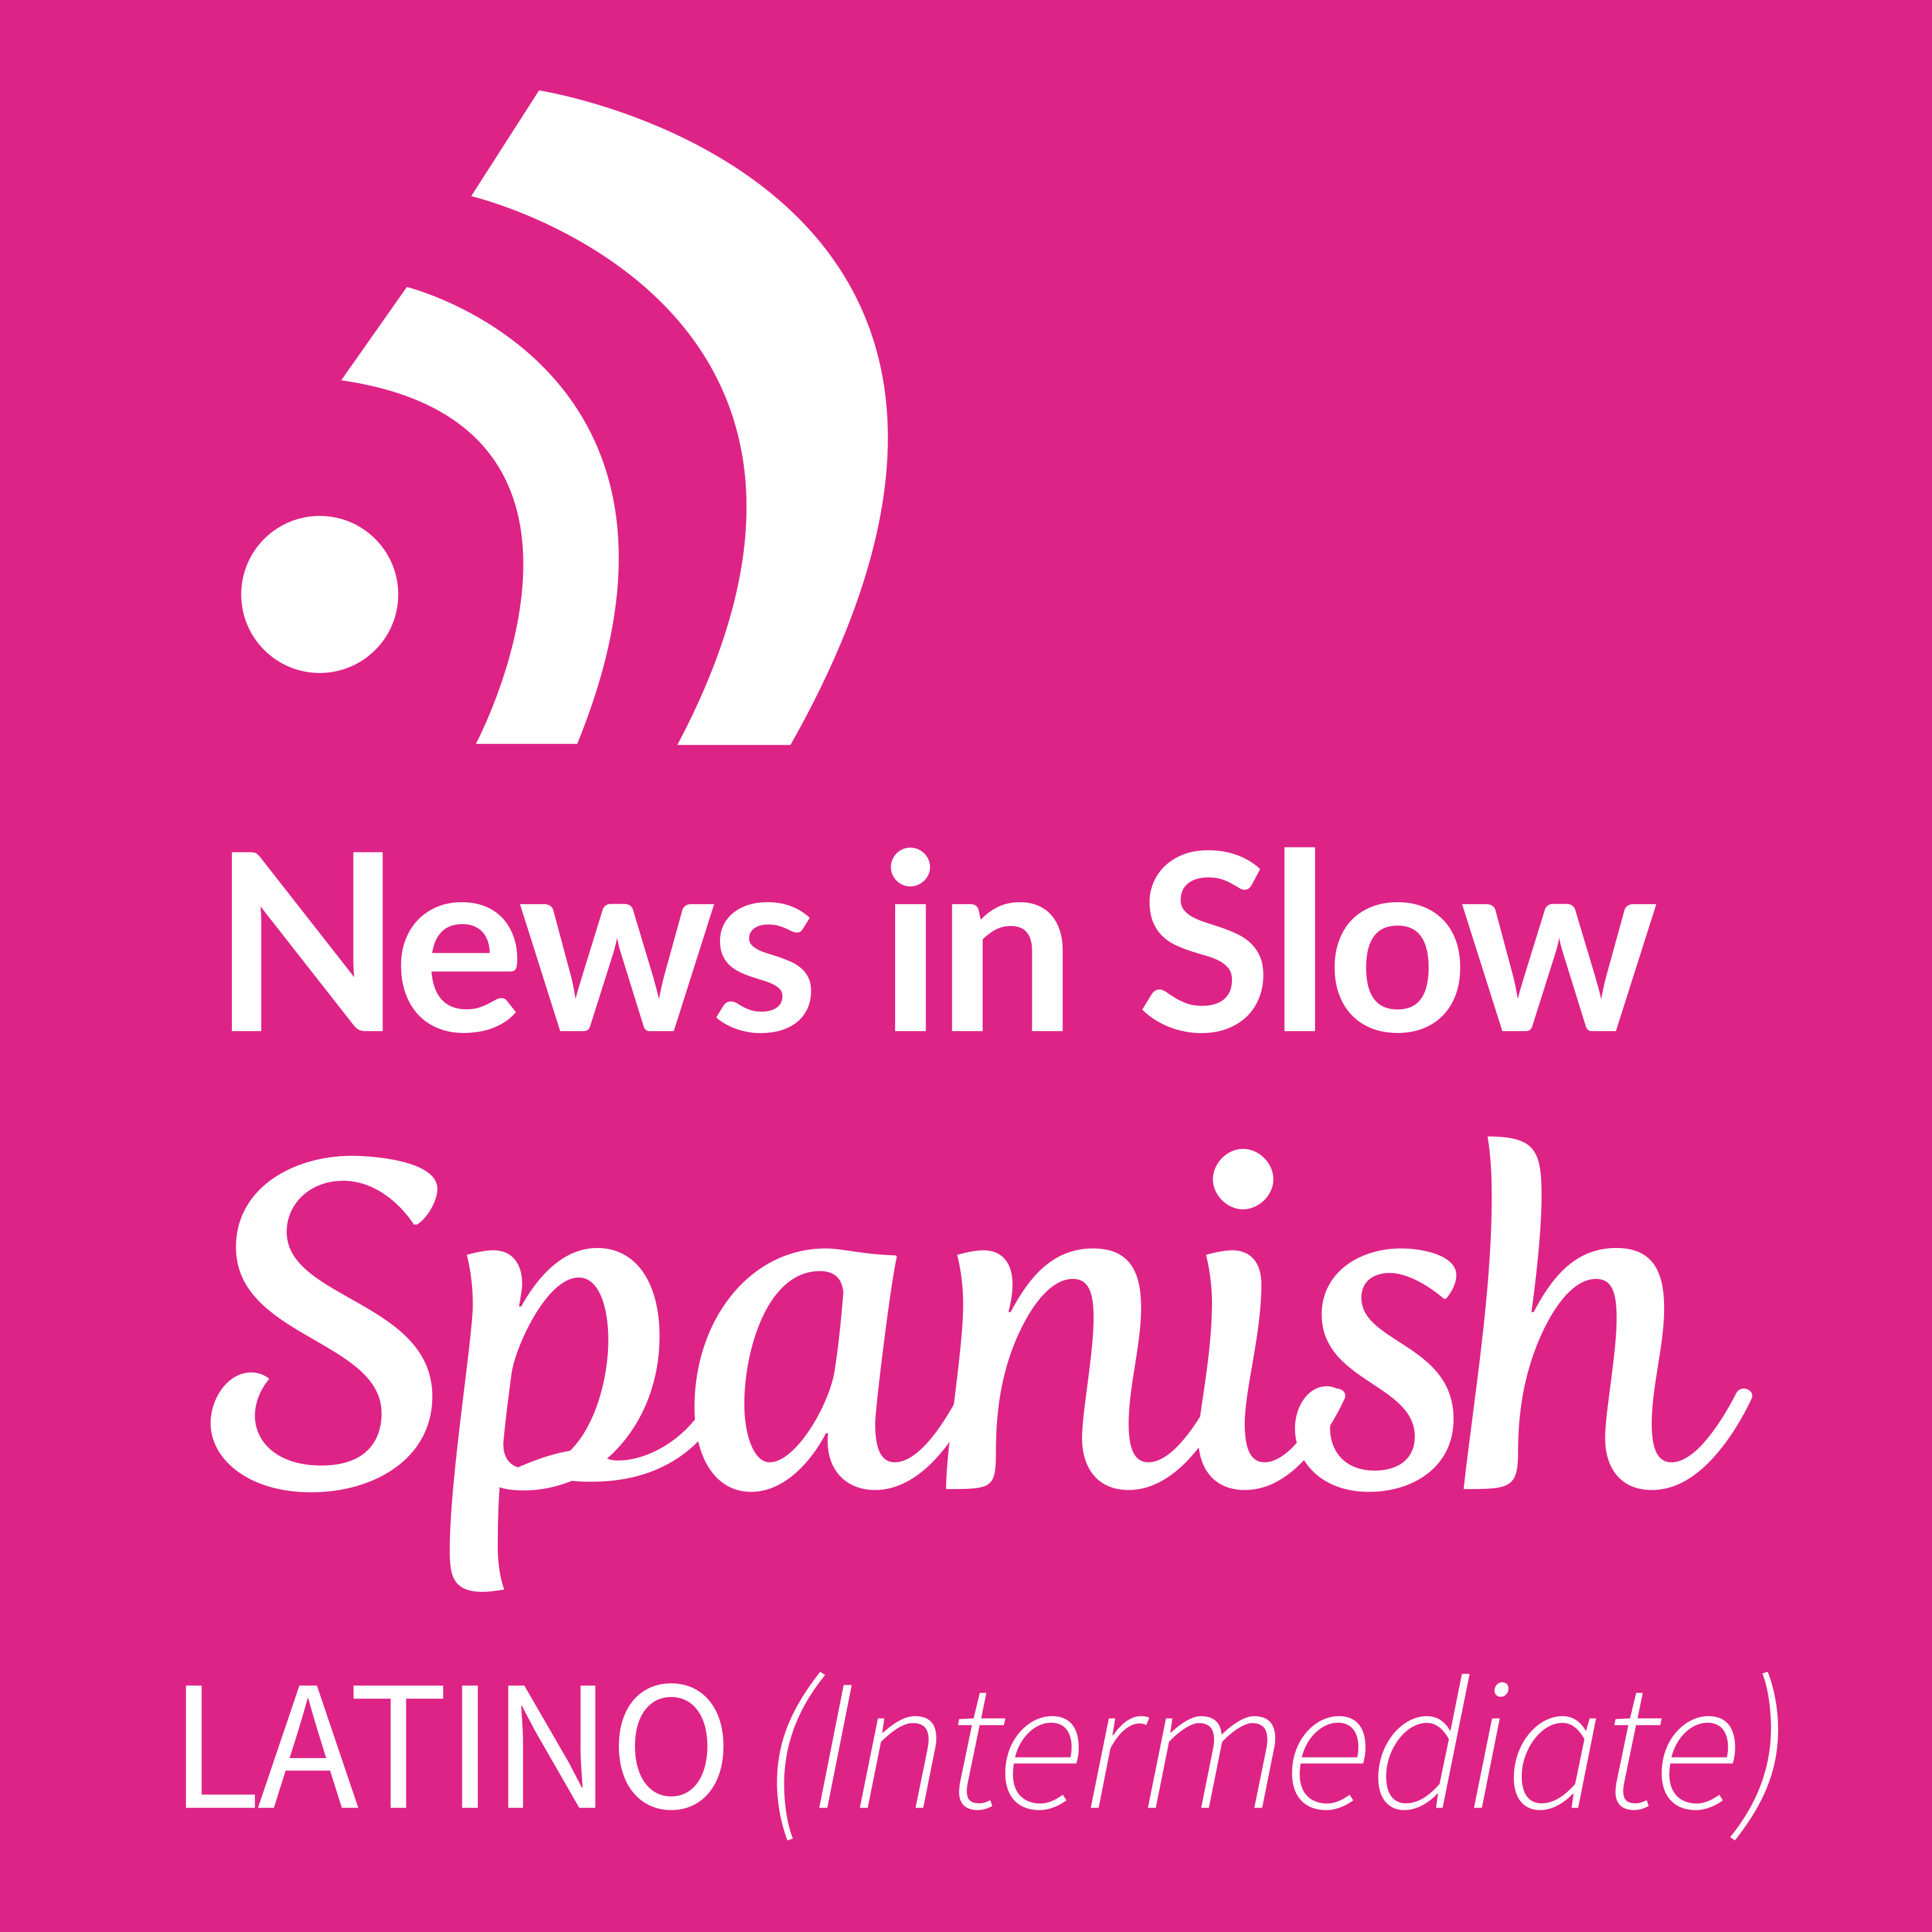 News in Slow Spanish Latino - # 152 - Spanish grammar, news and expressions